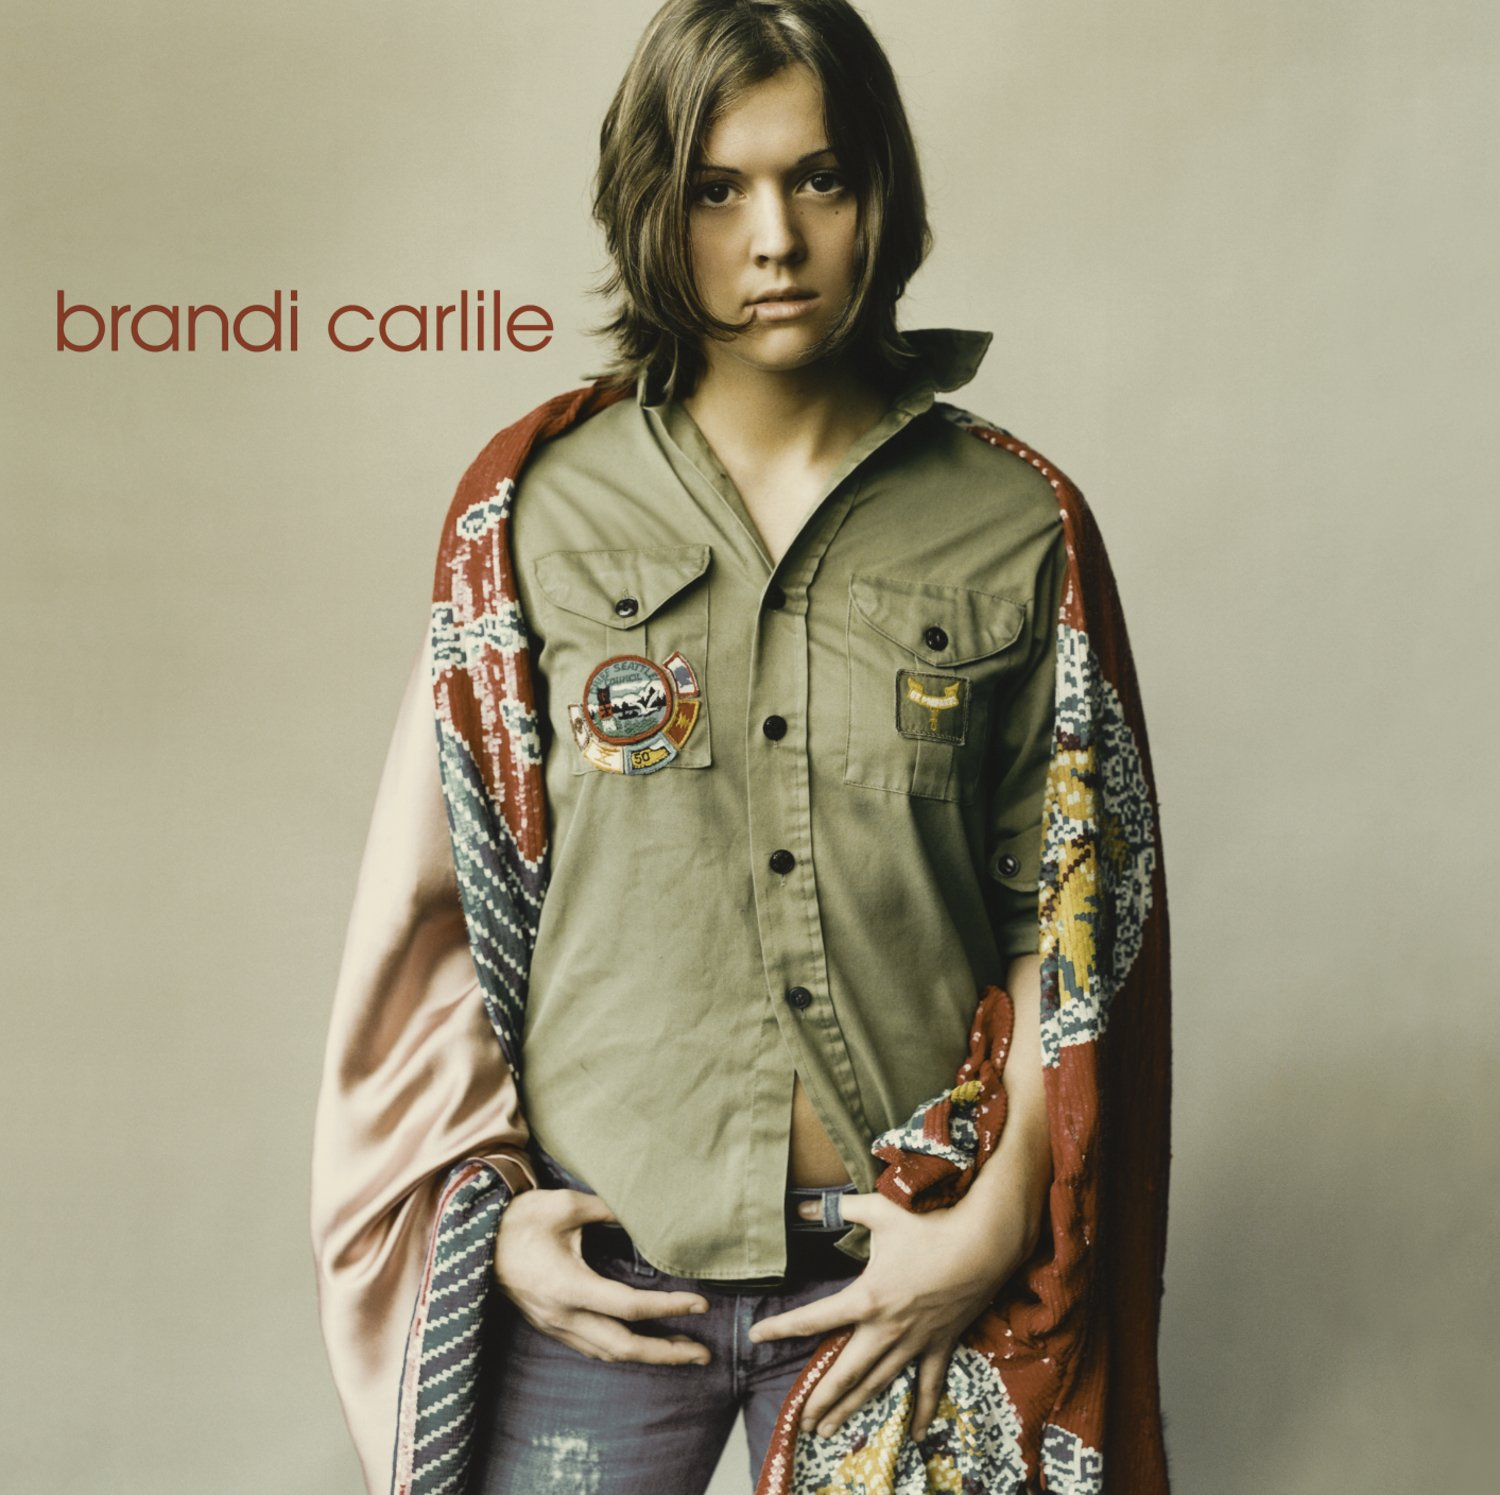 Sunday Quarantunes: Ear Snacks for Sheltering in Place (I Heart Brandi Carlile Edition)